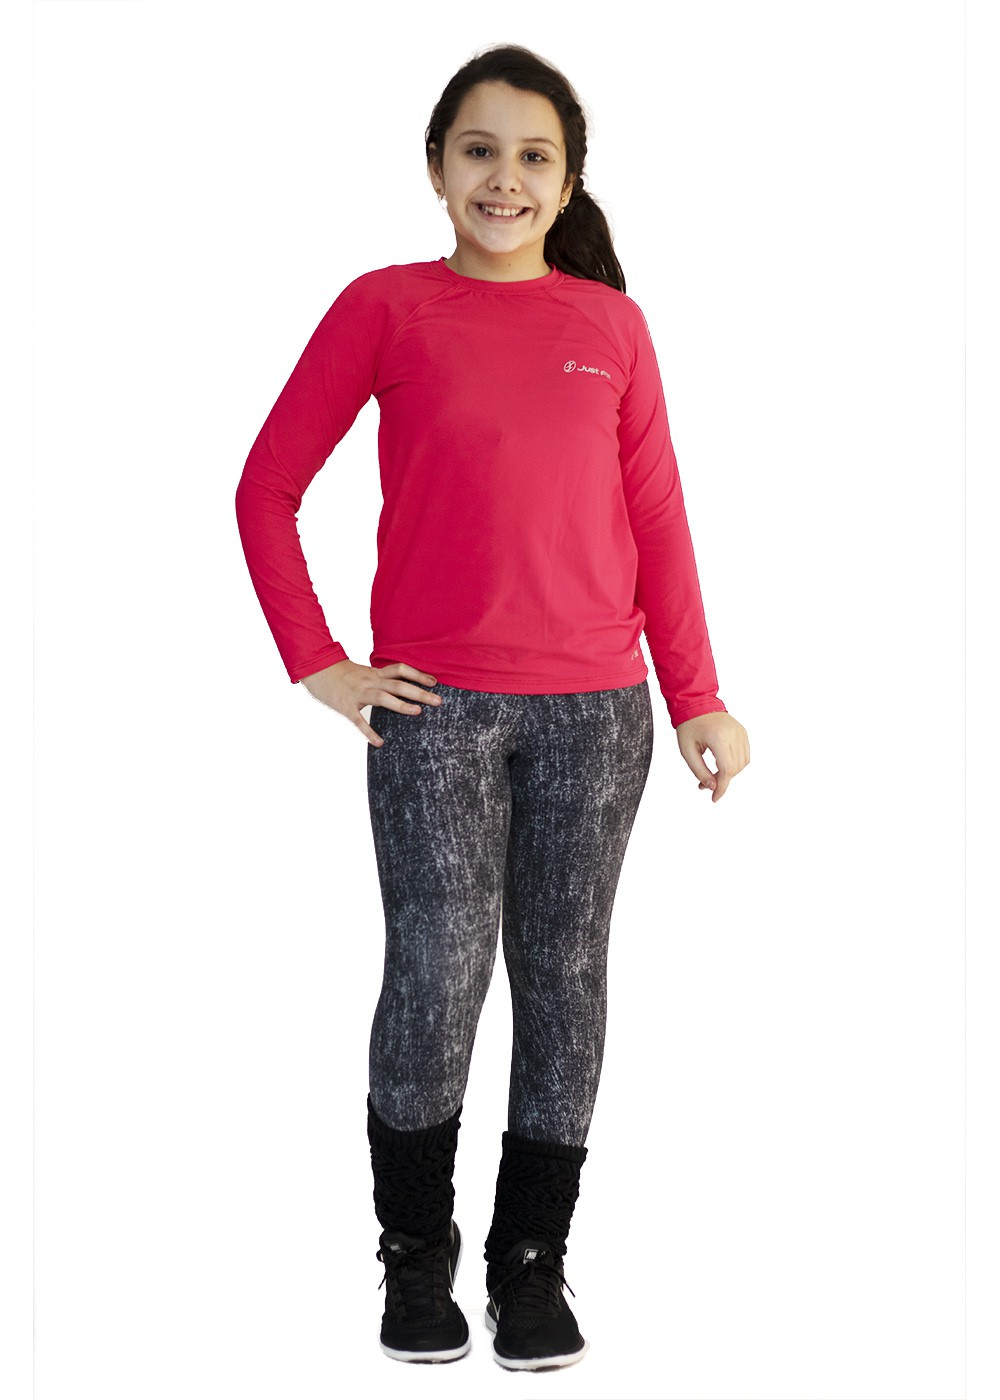 POLAINA INFANTIL JUST FIT - PRETO